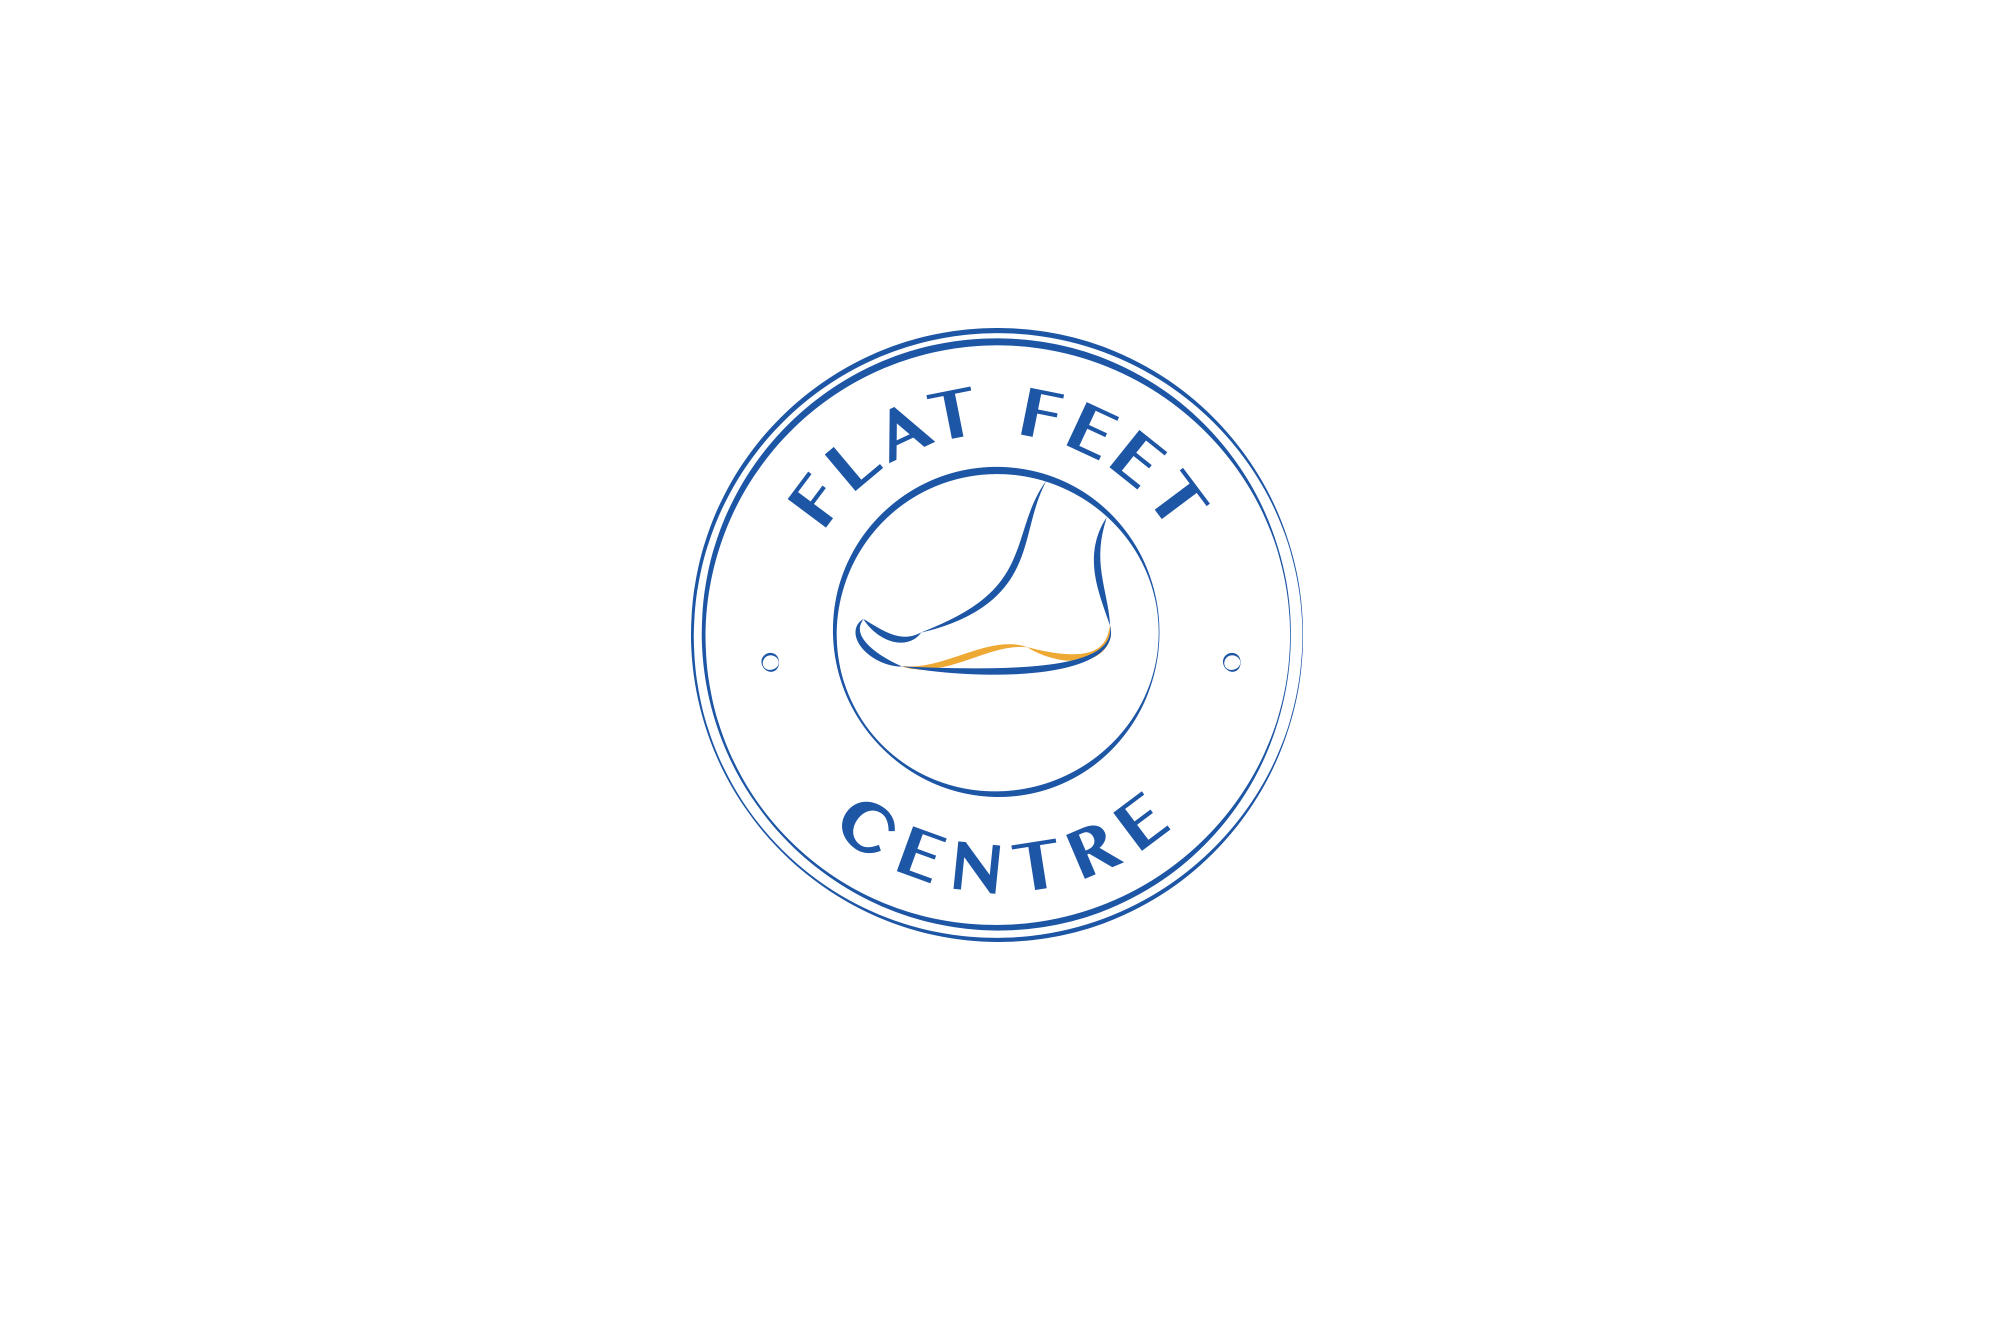 http://dubaipodiatry.com/wp-content/uploads/2015/12/DPC_logos_flat_feet_centre.png